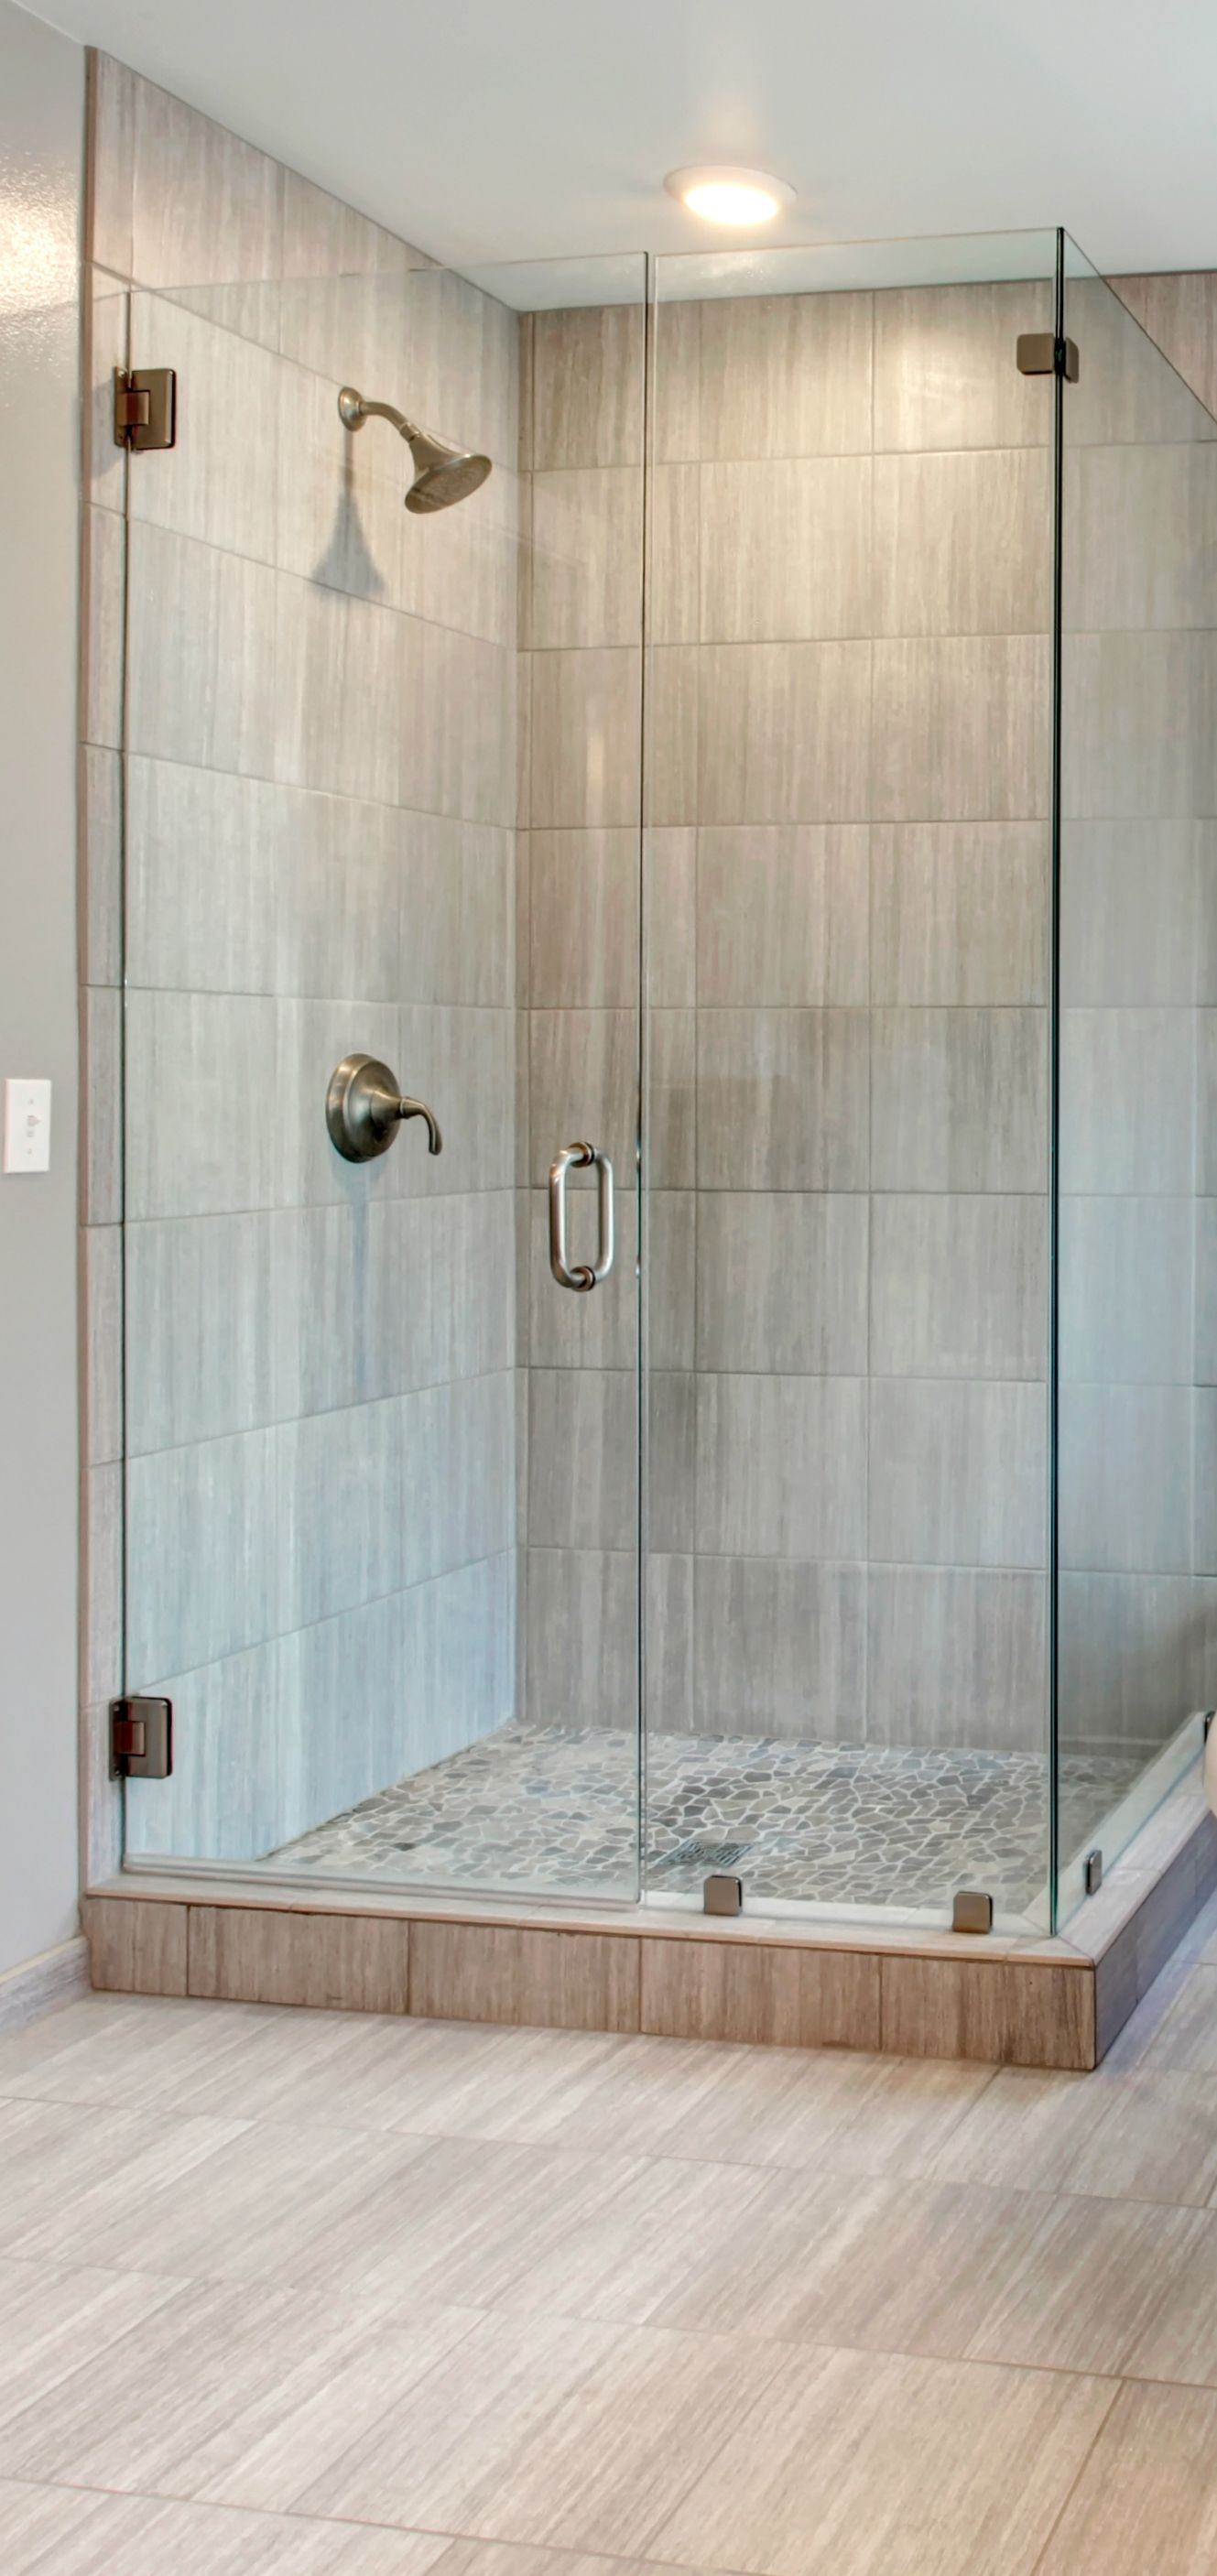 Kleines Badezimmer Diy Showers Corner Walk In Shower Ideas For Simple Small